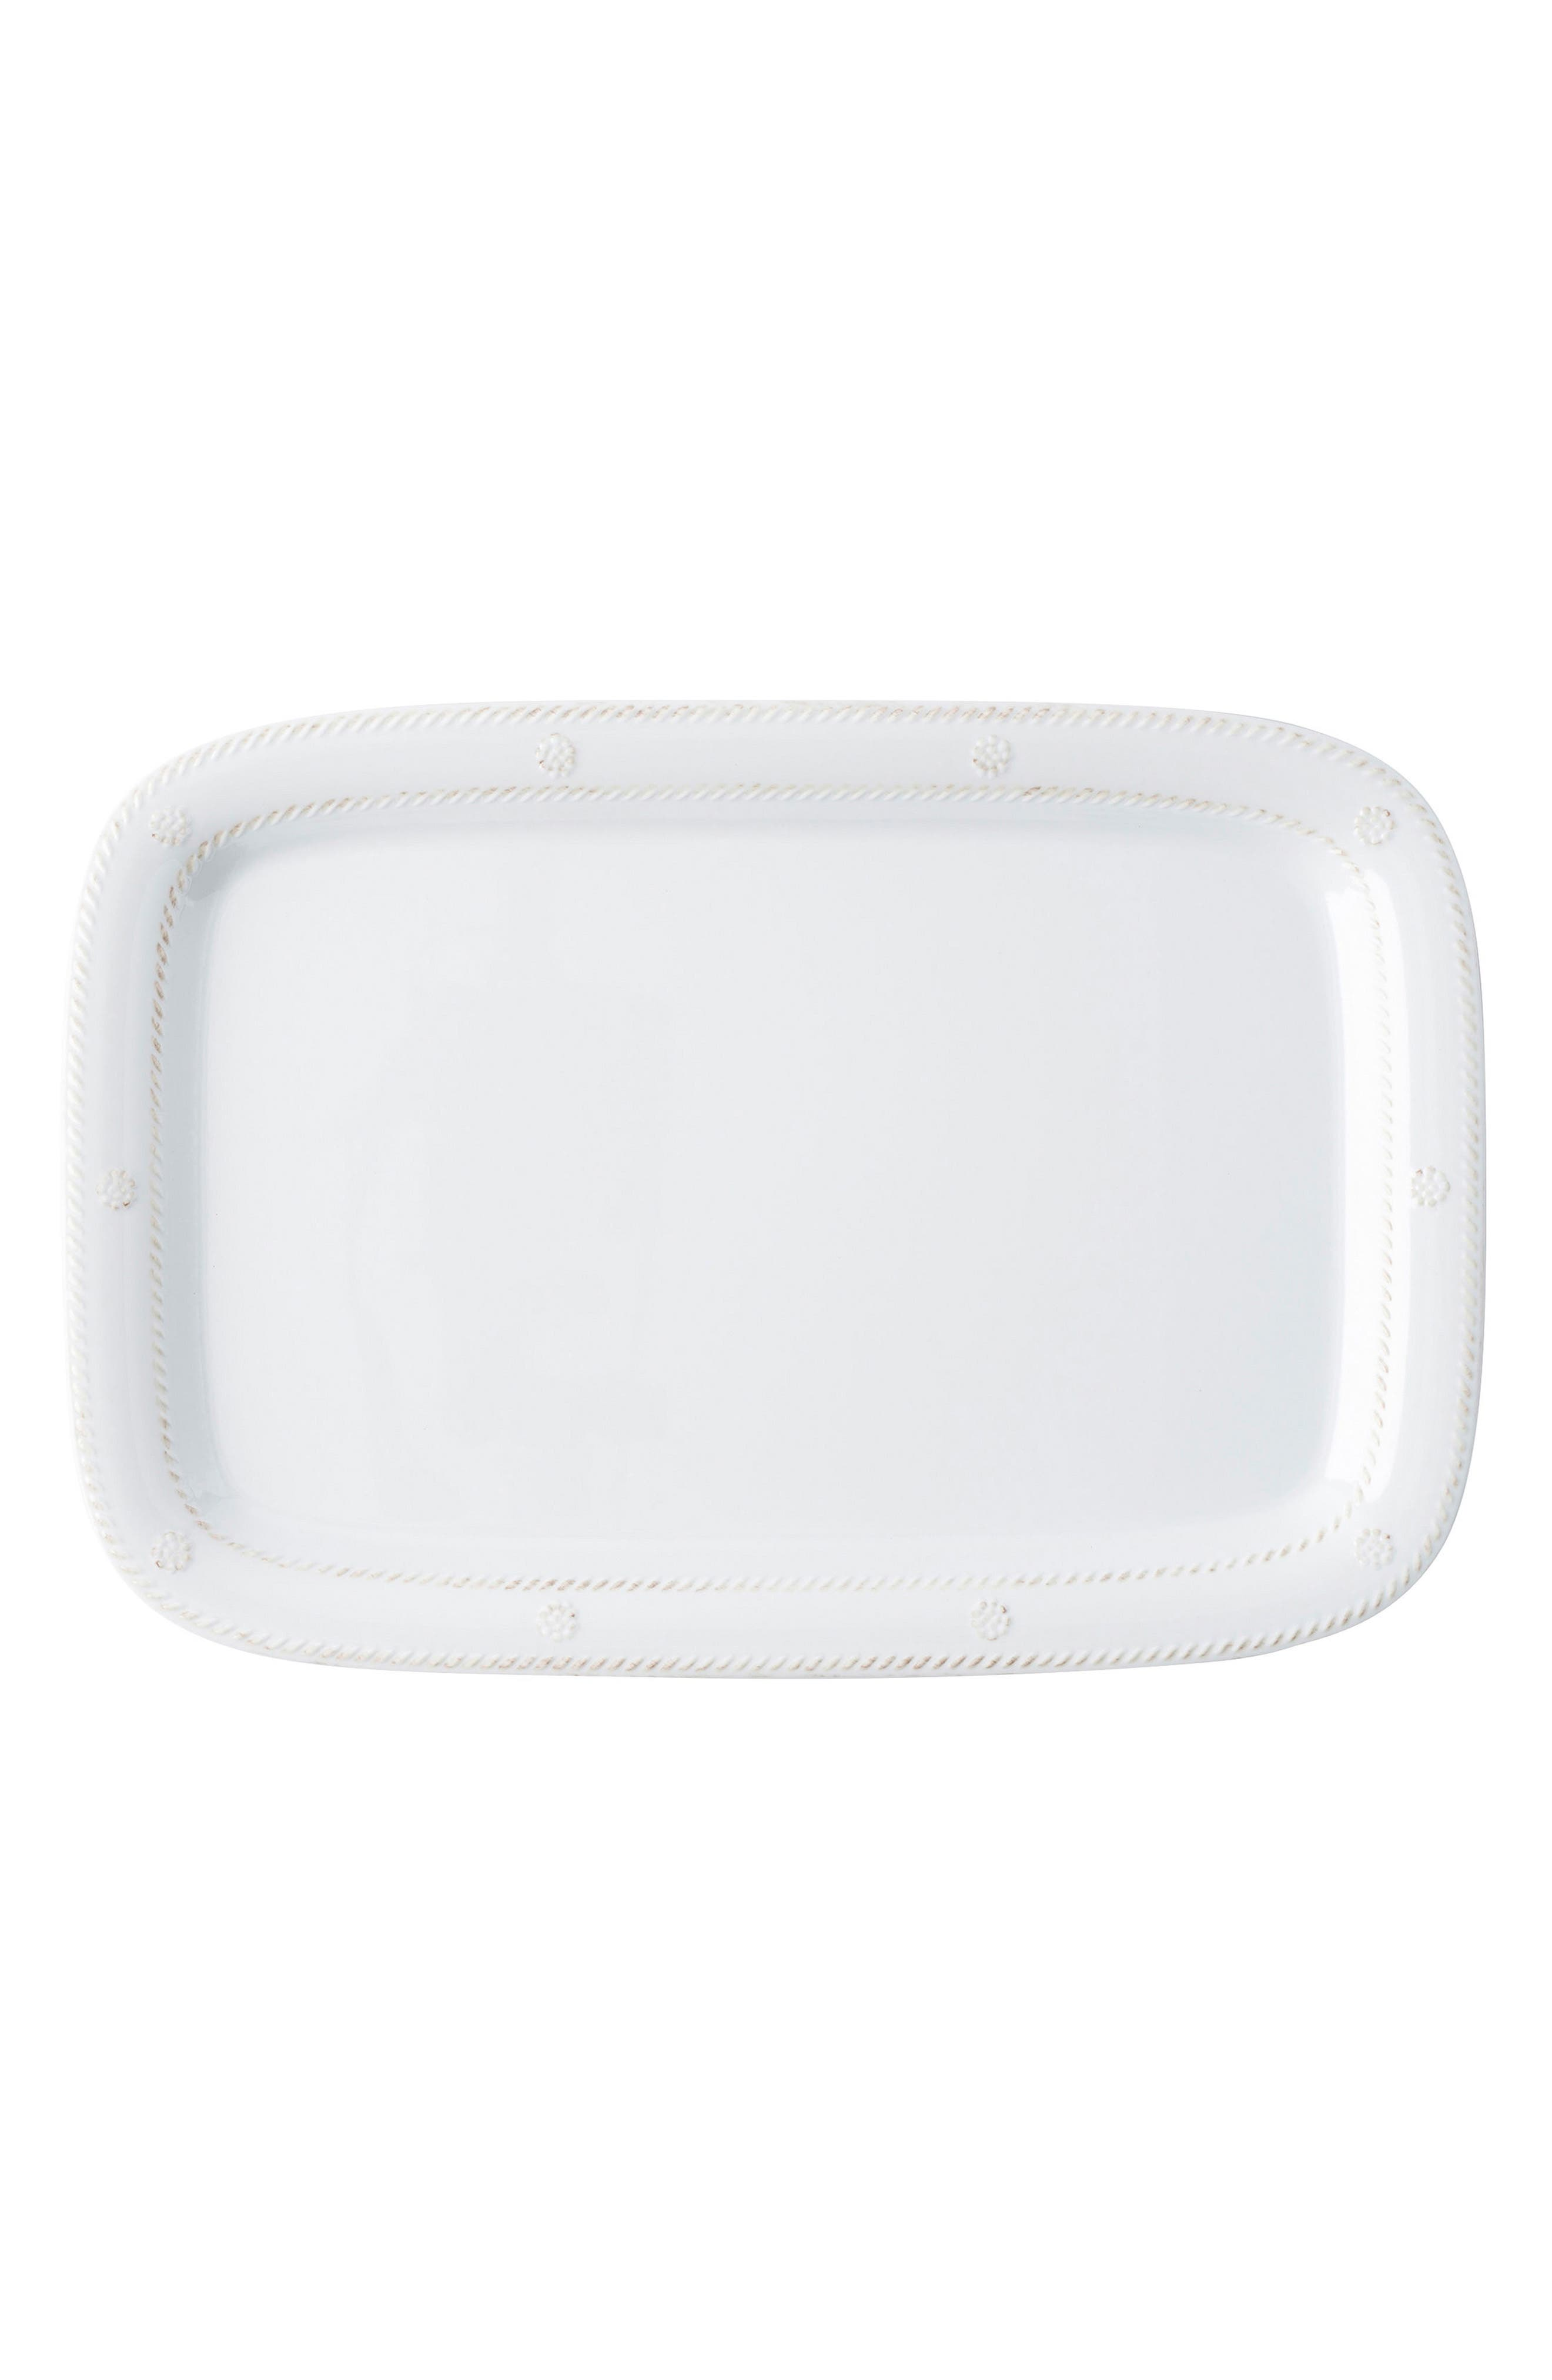 Berry & Thread Whitewash Melamine Serving Tray,                         Main,                         color, Whitewash